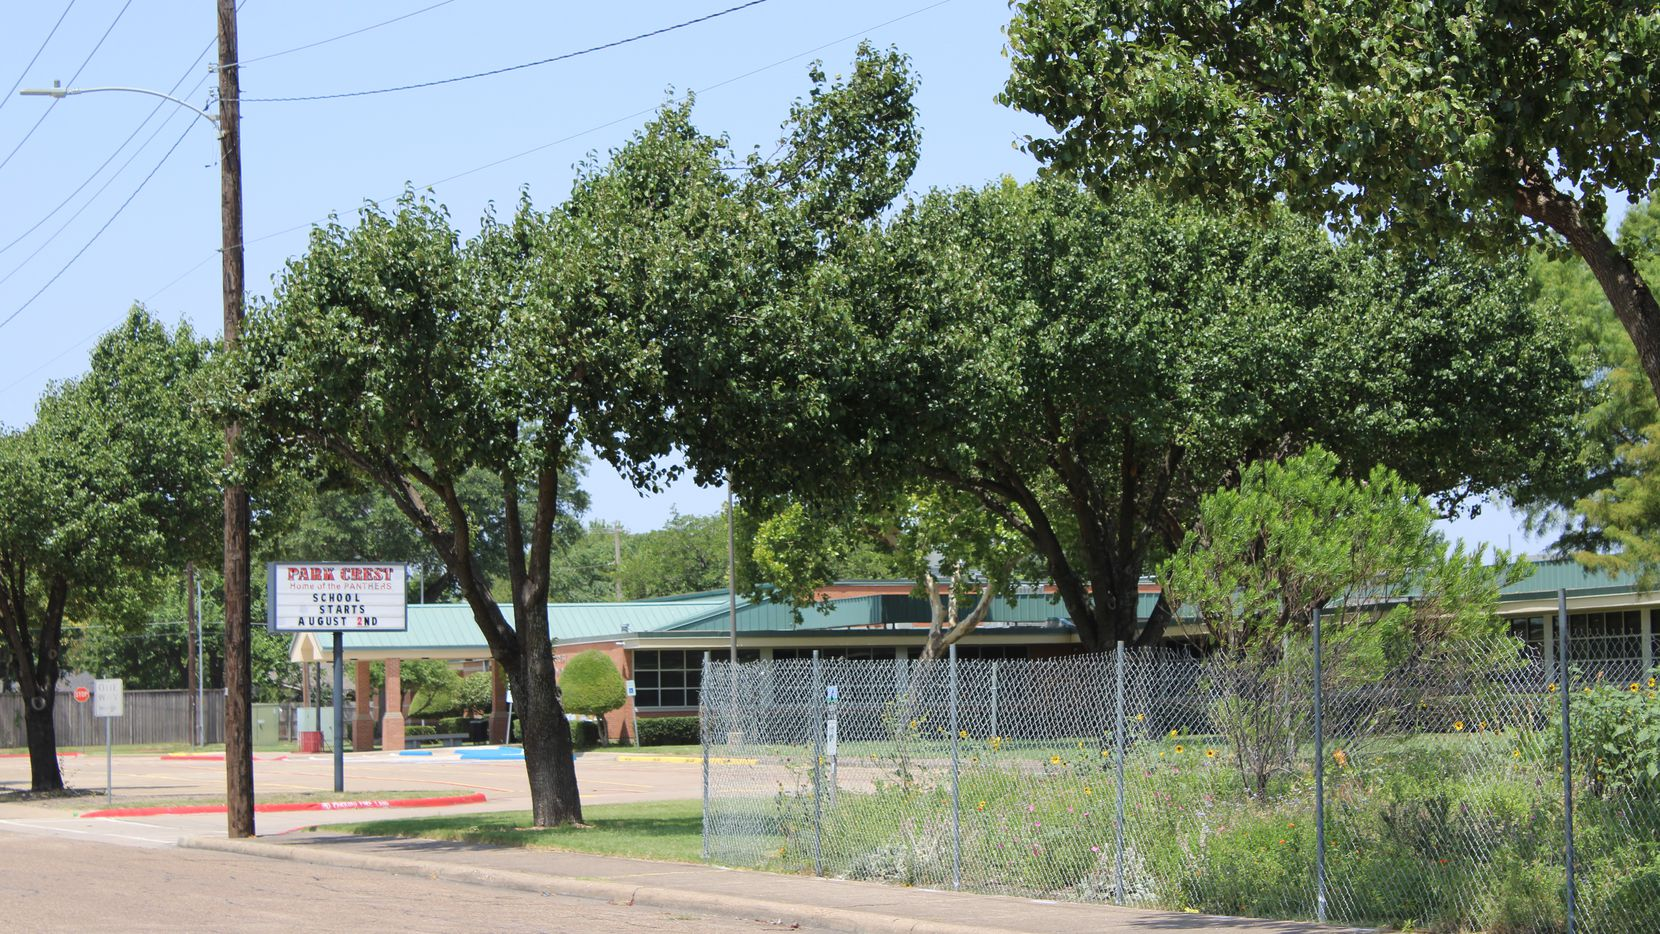 A company placed fencing around a garden at Park Crest Elementary School in July. Trustees voted on Sept. 28 to pay an independent contractor nearly $70,000 to test soil at Sam Houston Middle School — which is across the street from Park Crest — for elevated levels of arsenic and lead.